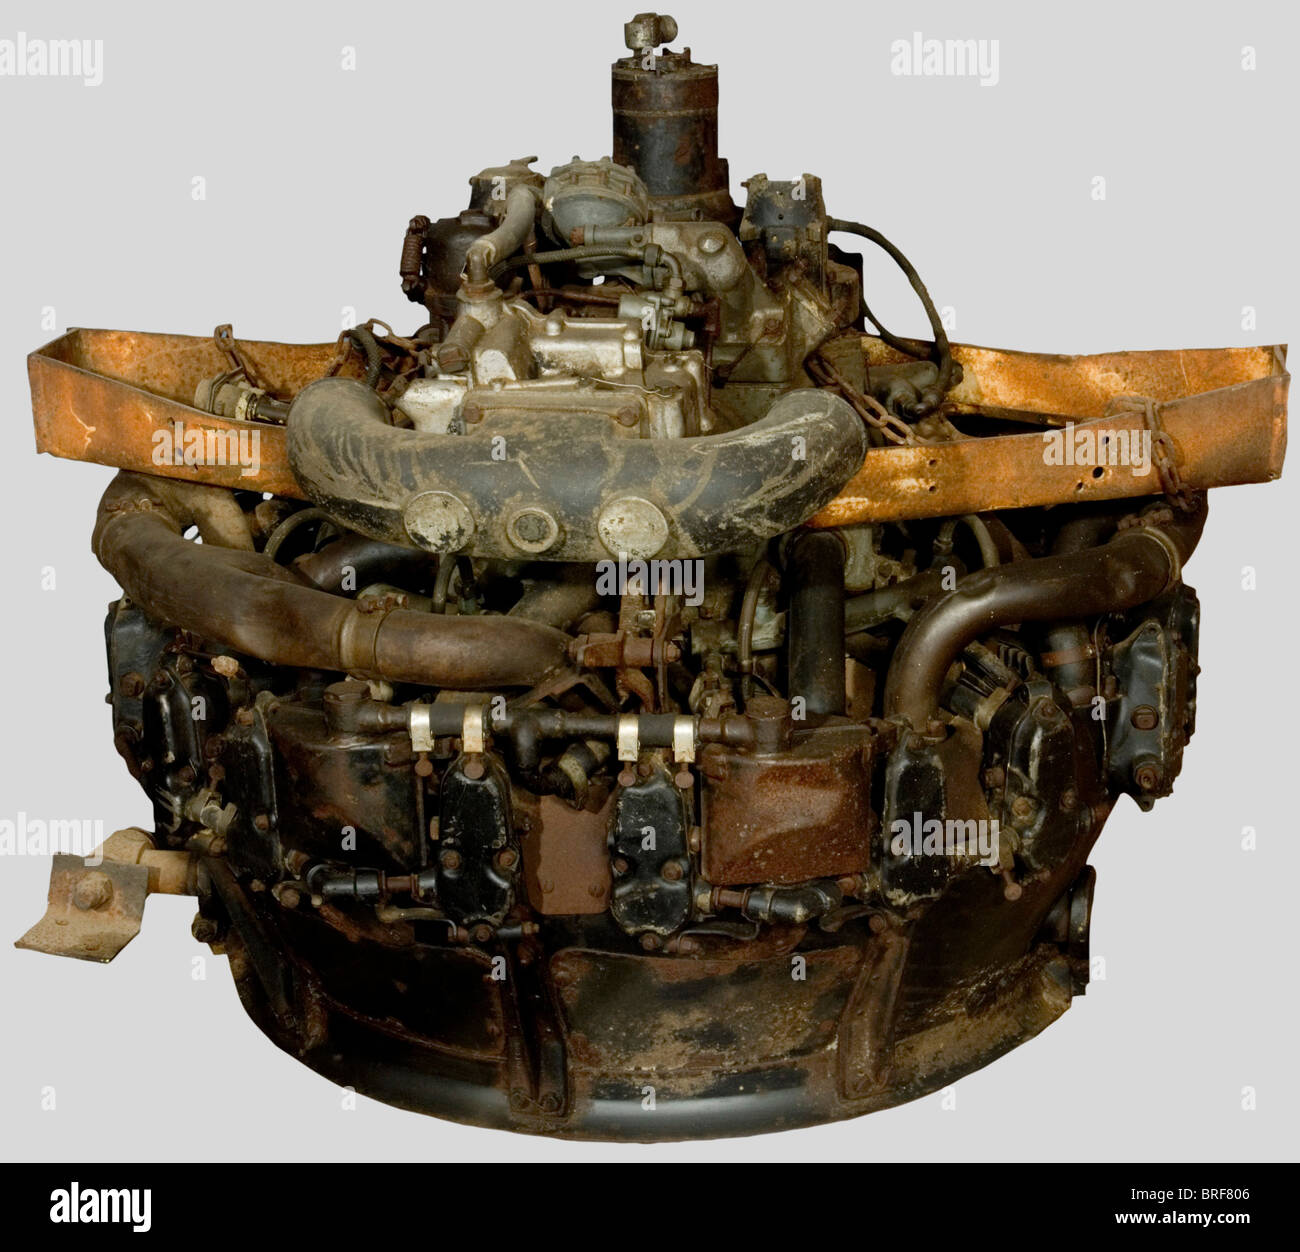 A 9-cylinder US airplane engine, for a Continental Airlines plane. Very corroded., historic, historical, 20th century, - Stock Image